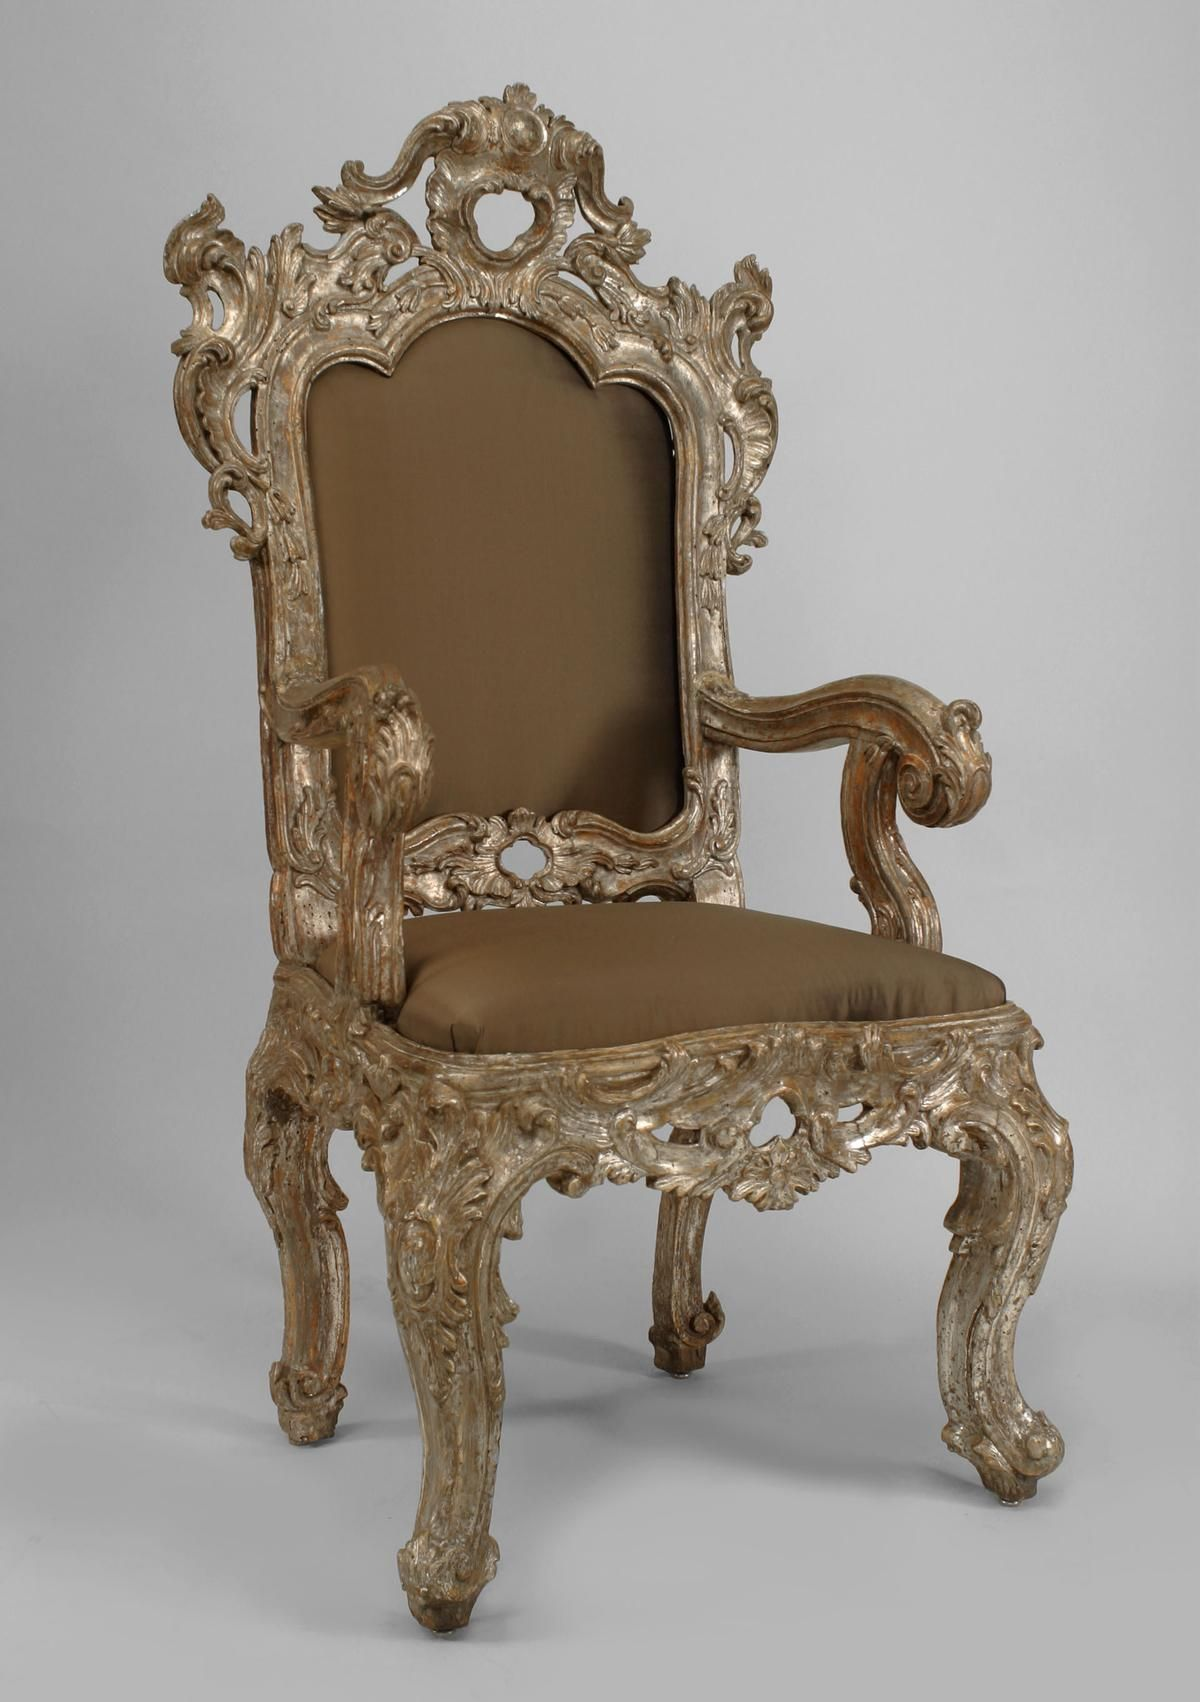 Pair of antique italian rococo high back silver gilt carved throne chairs with beige upholstered